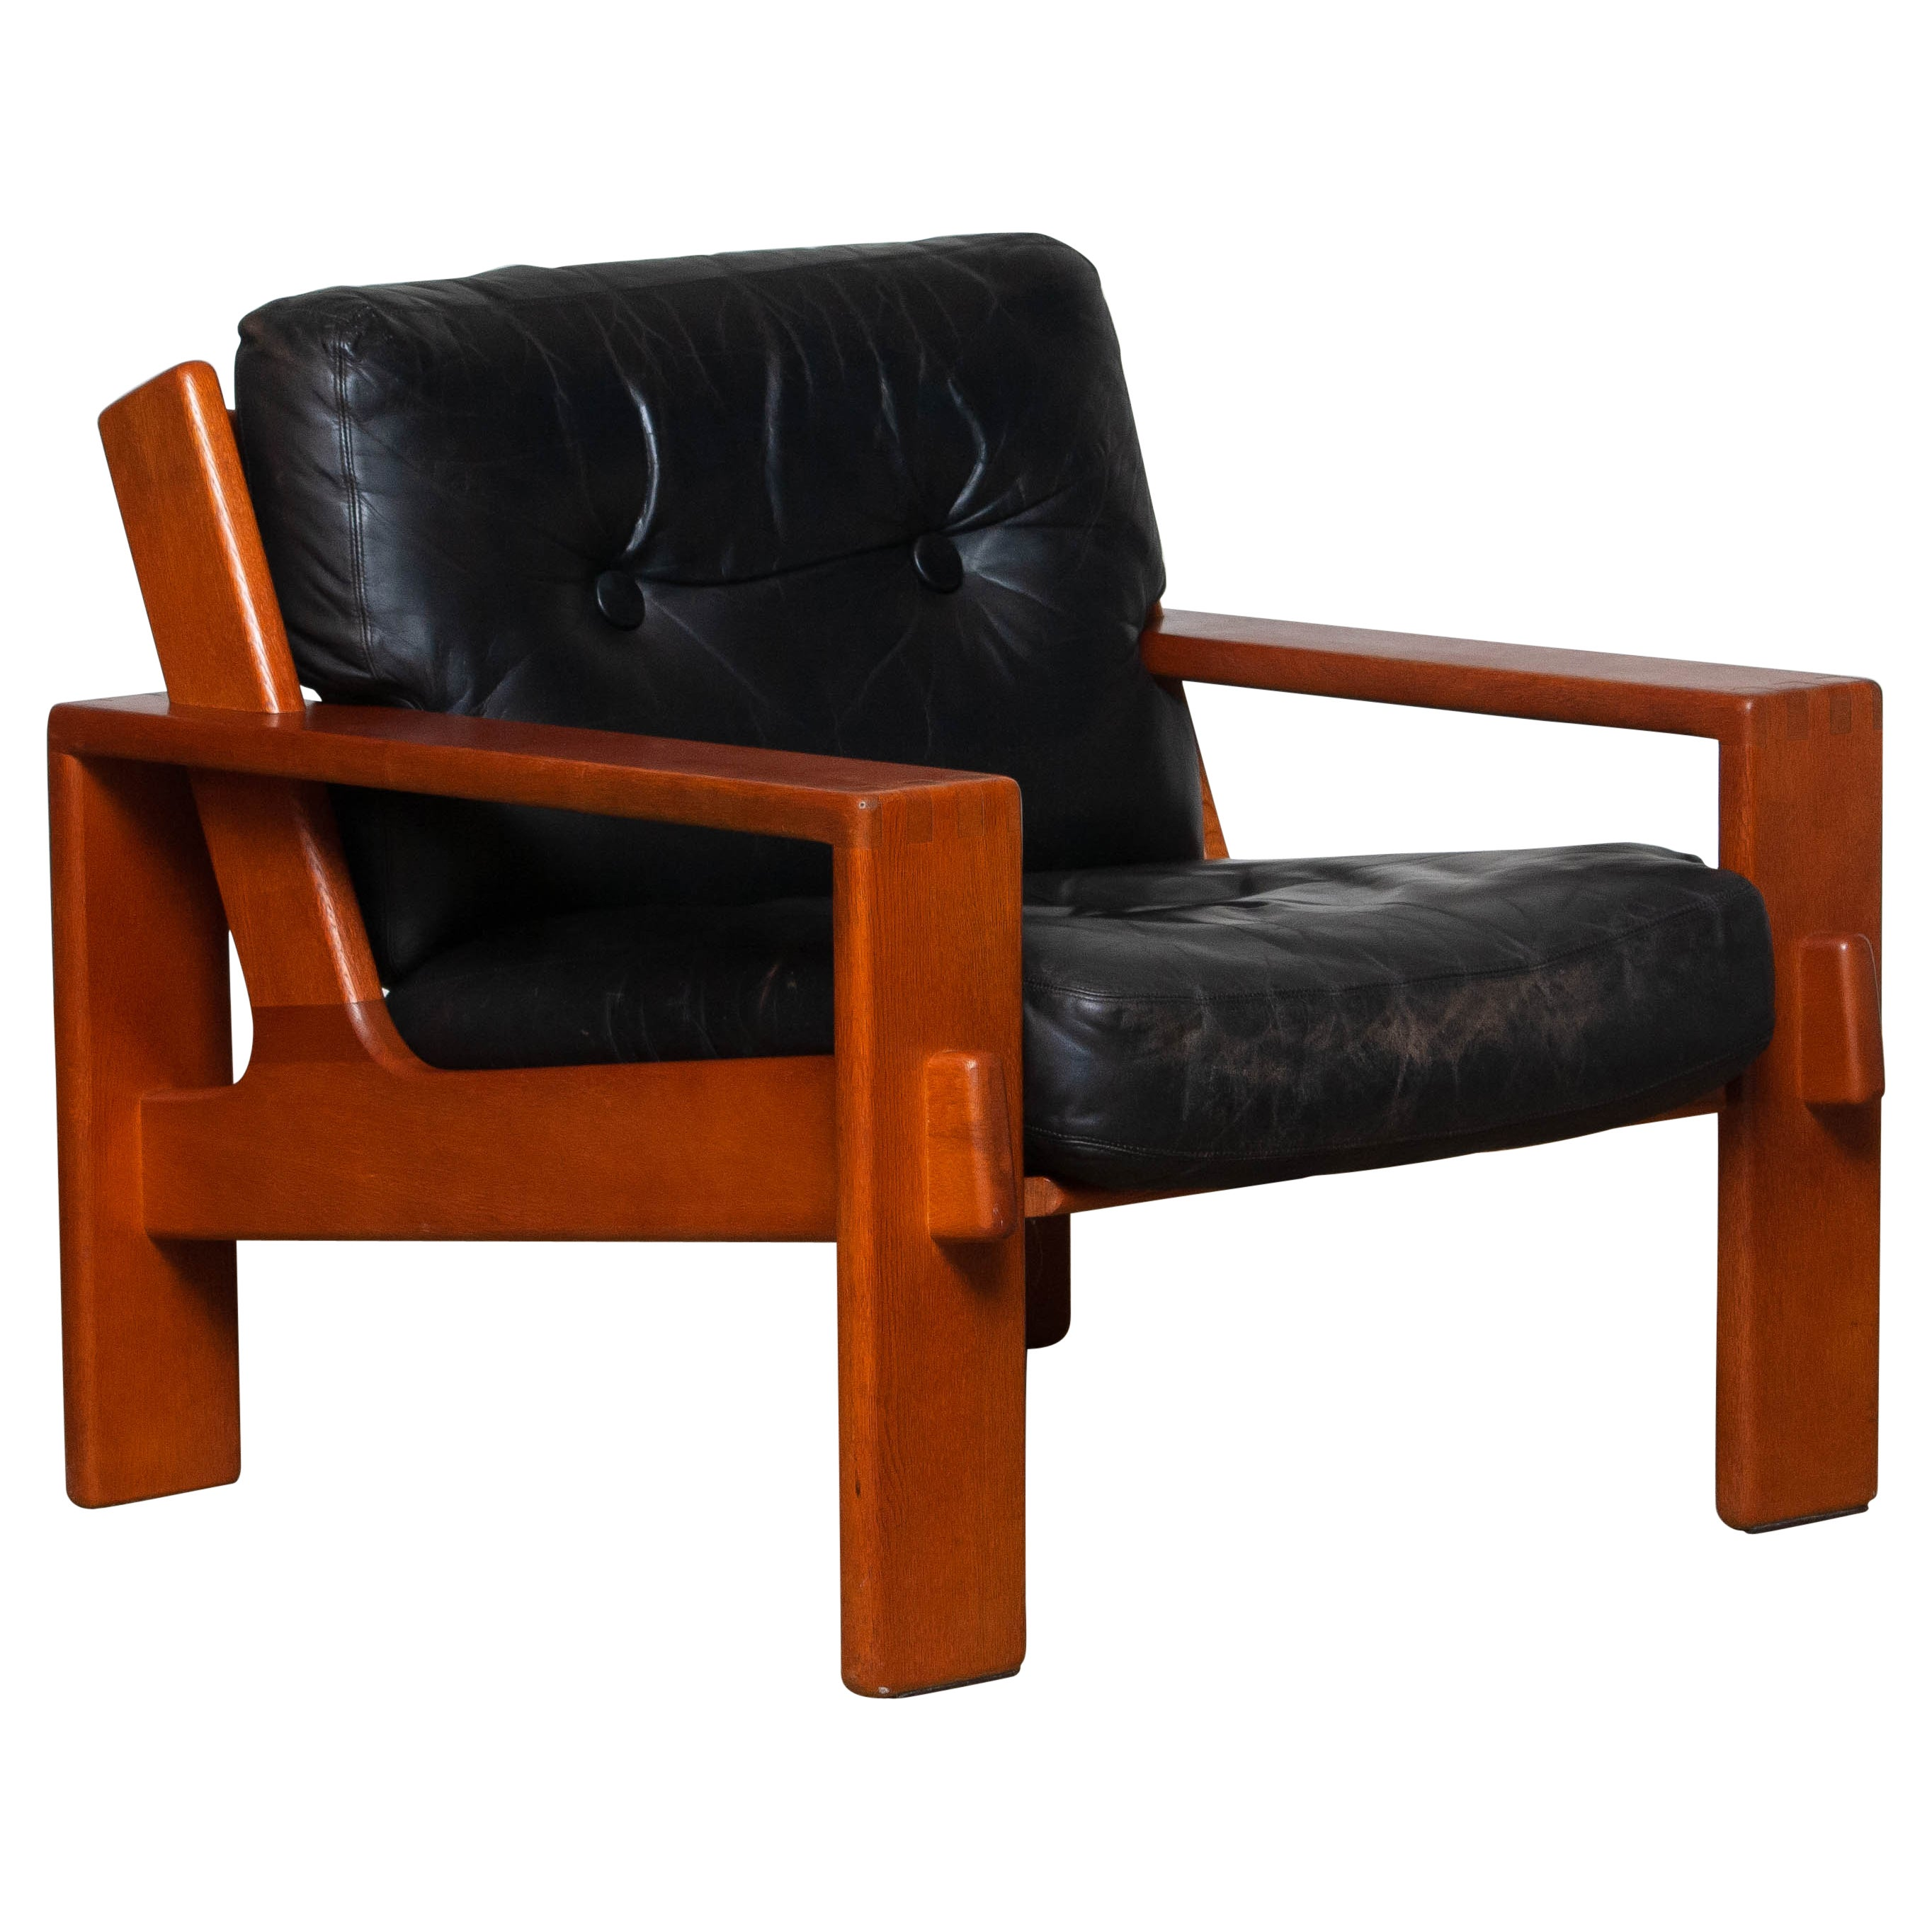 1960s, Teak and Black Leather Cubist Lounge Chair by Esko Pajamies for Asko